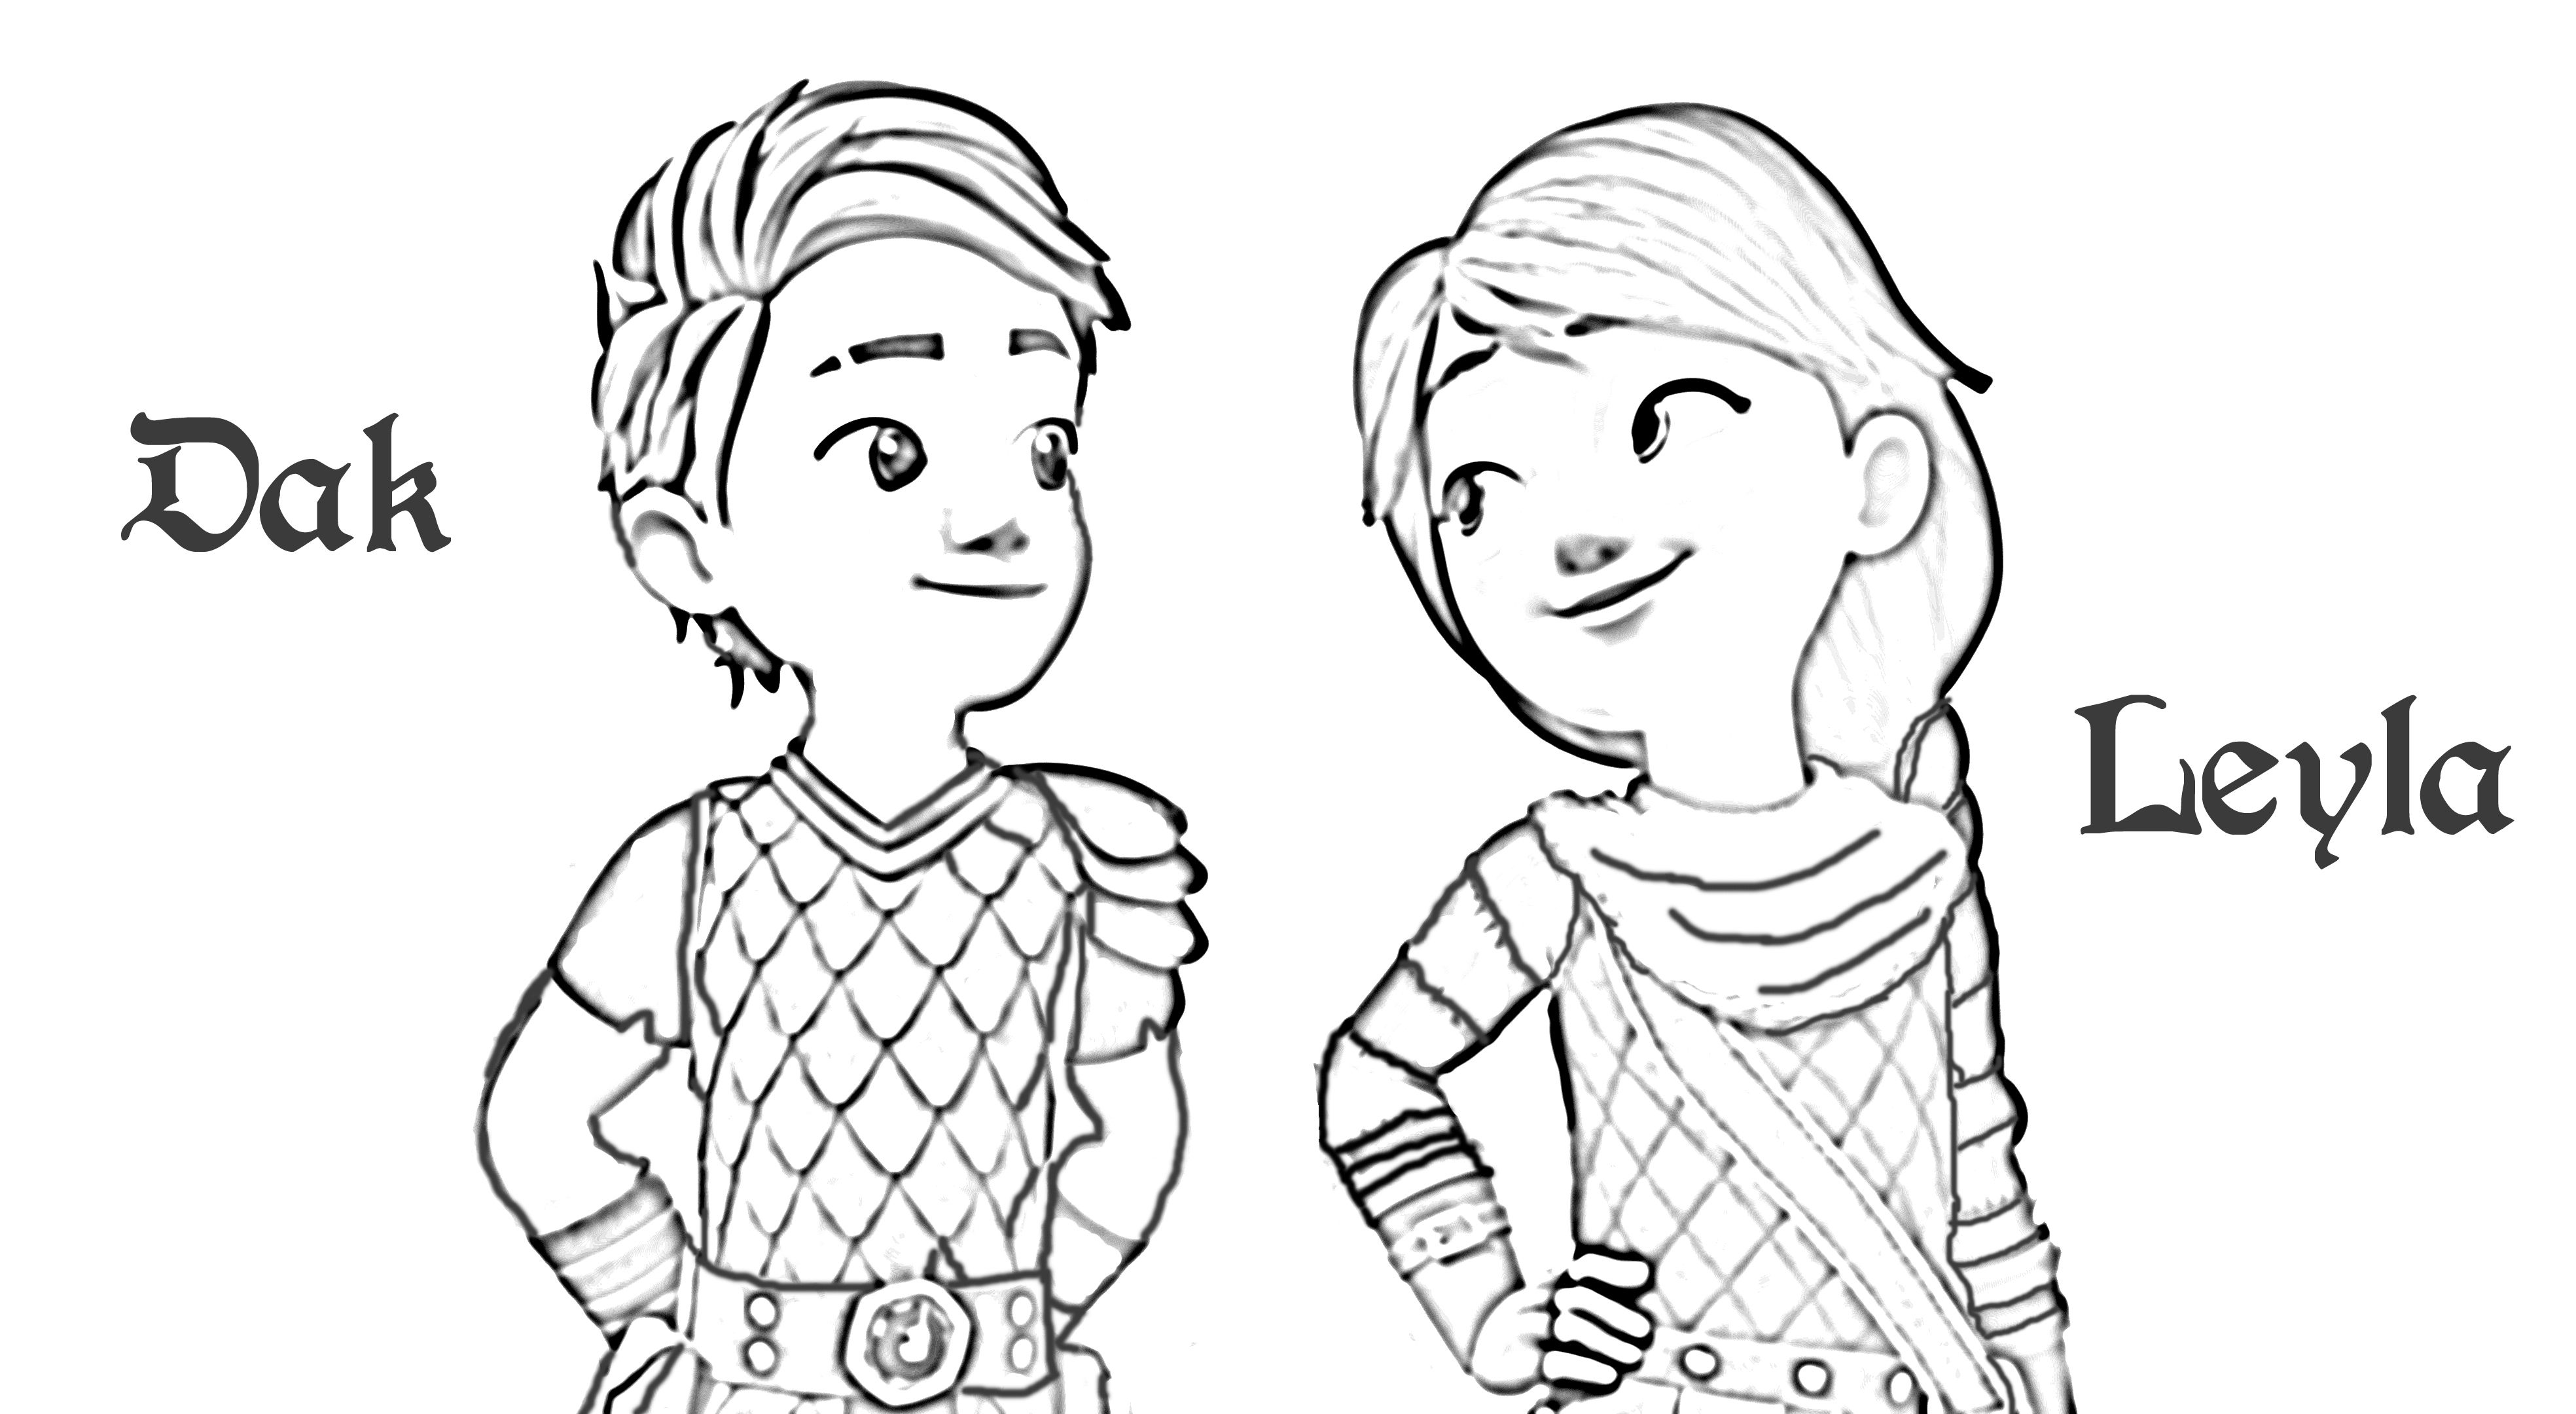 Dak Leyla Dragons Rescue Riders Coloring Page  Coloring pages